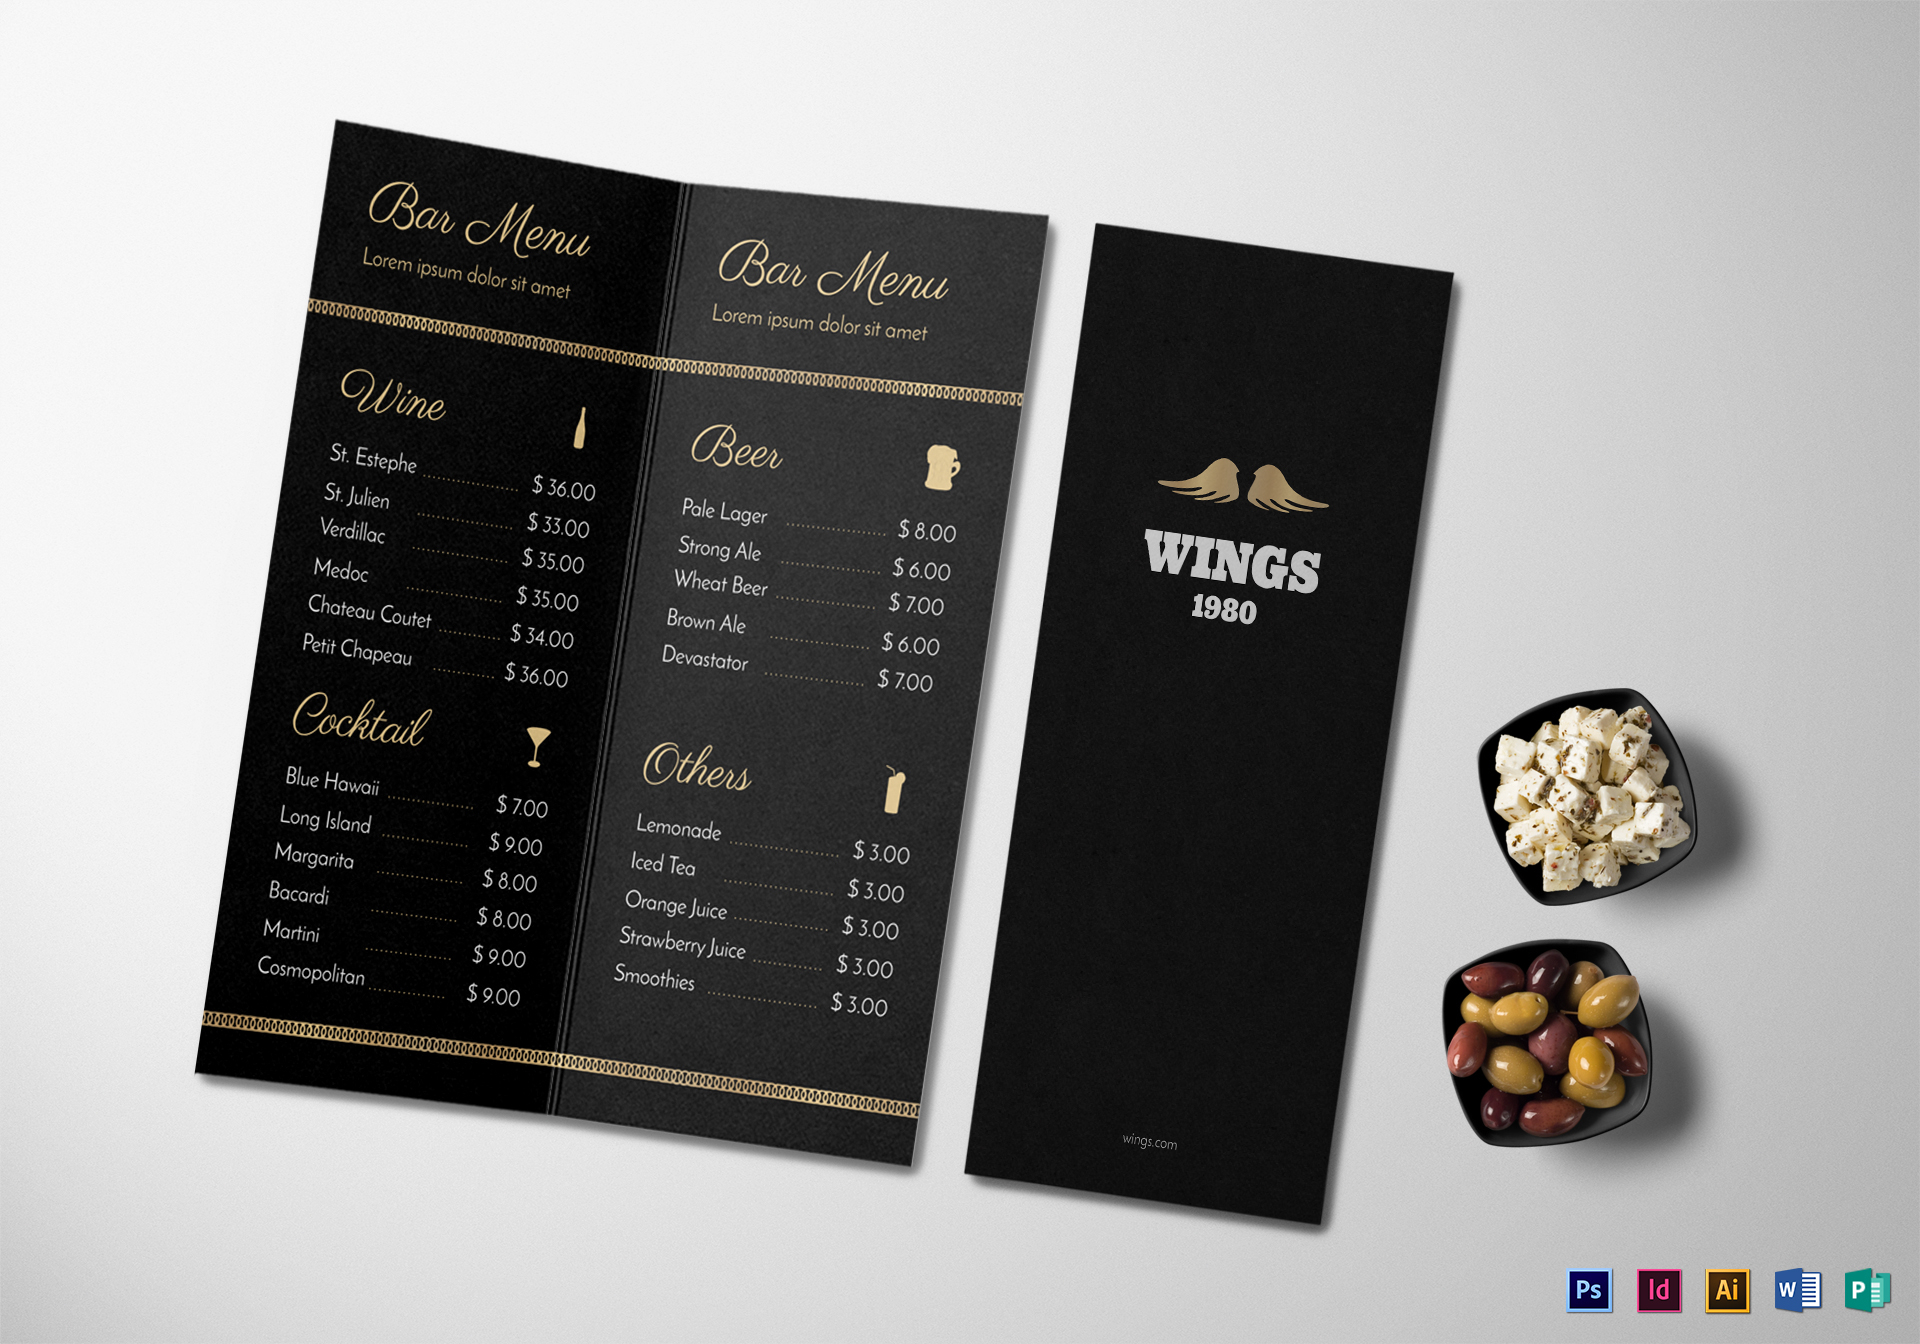 bar menu design template in psd word publisher illustrator indesign. Black Bedroom Furniture Sets. Home Design Ideas